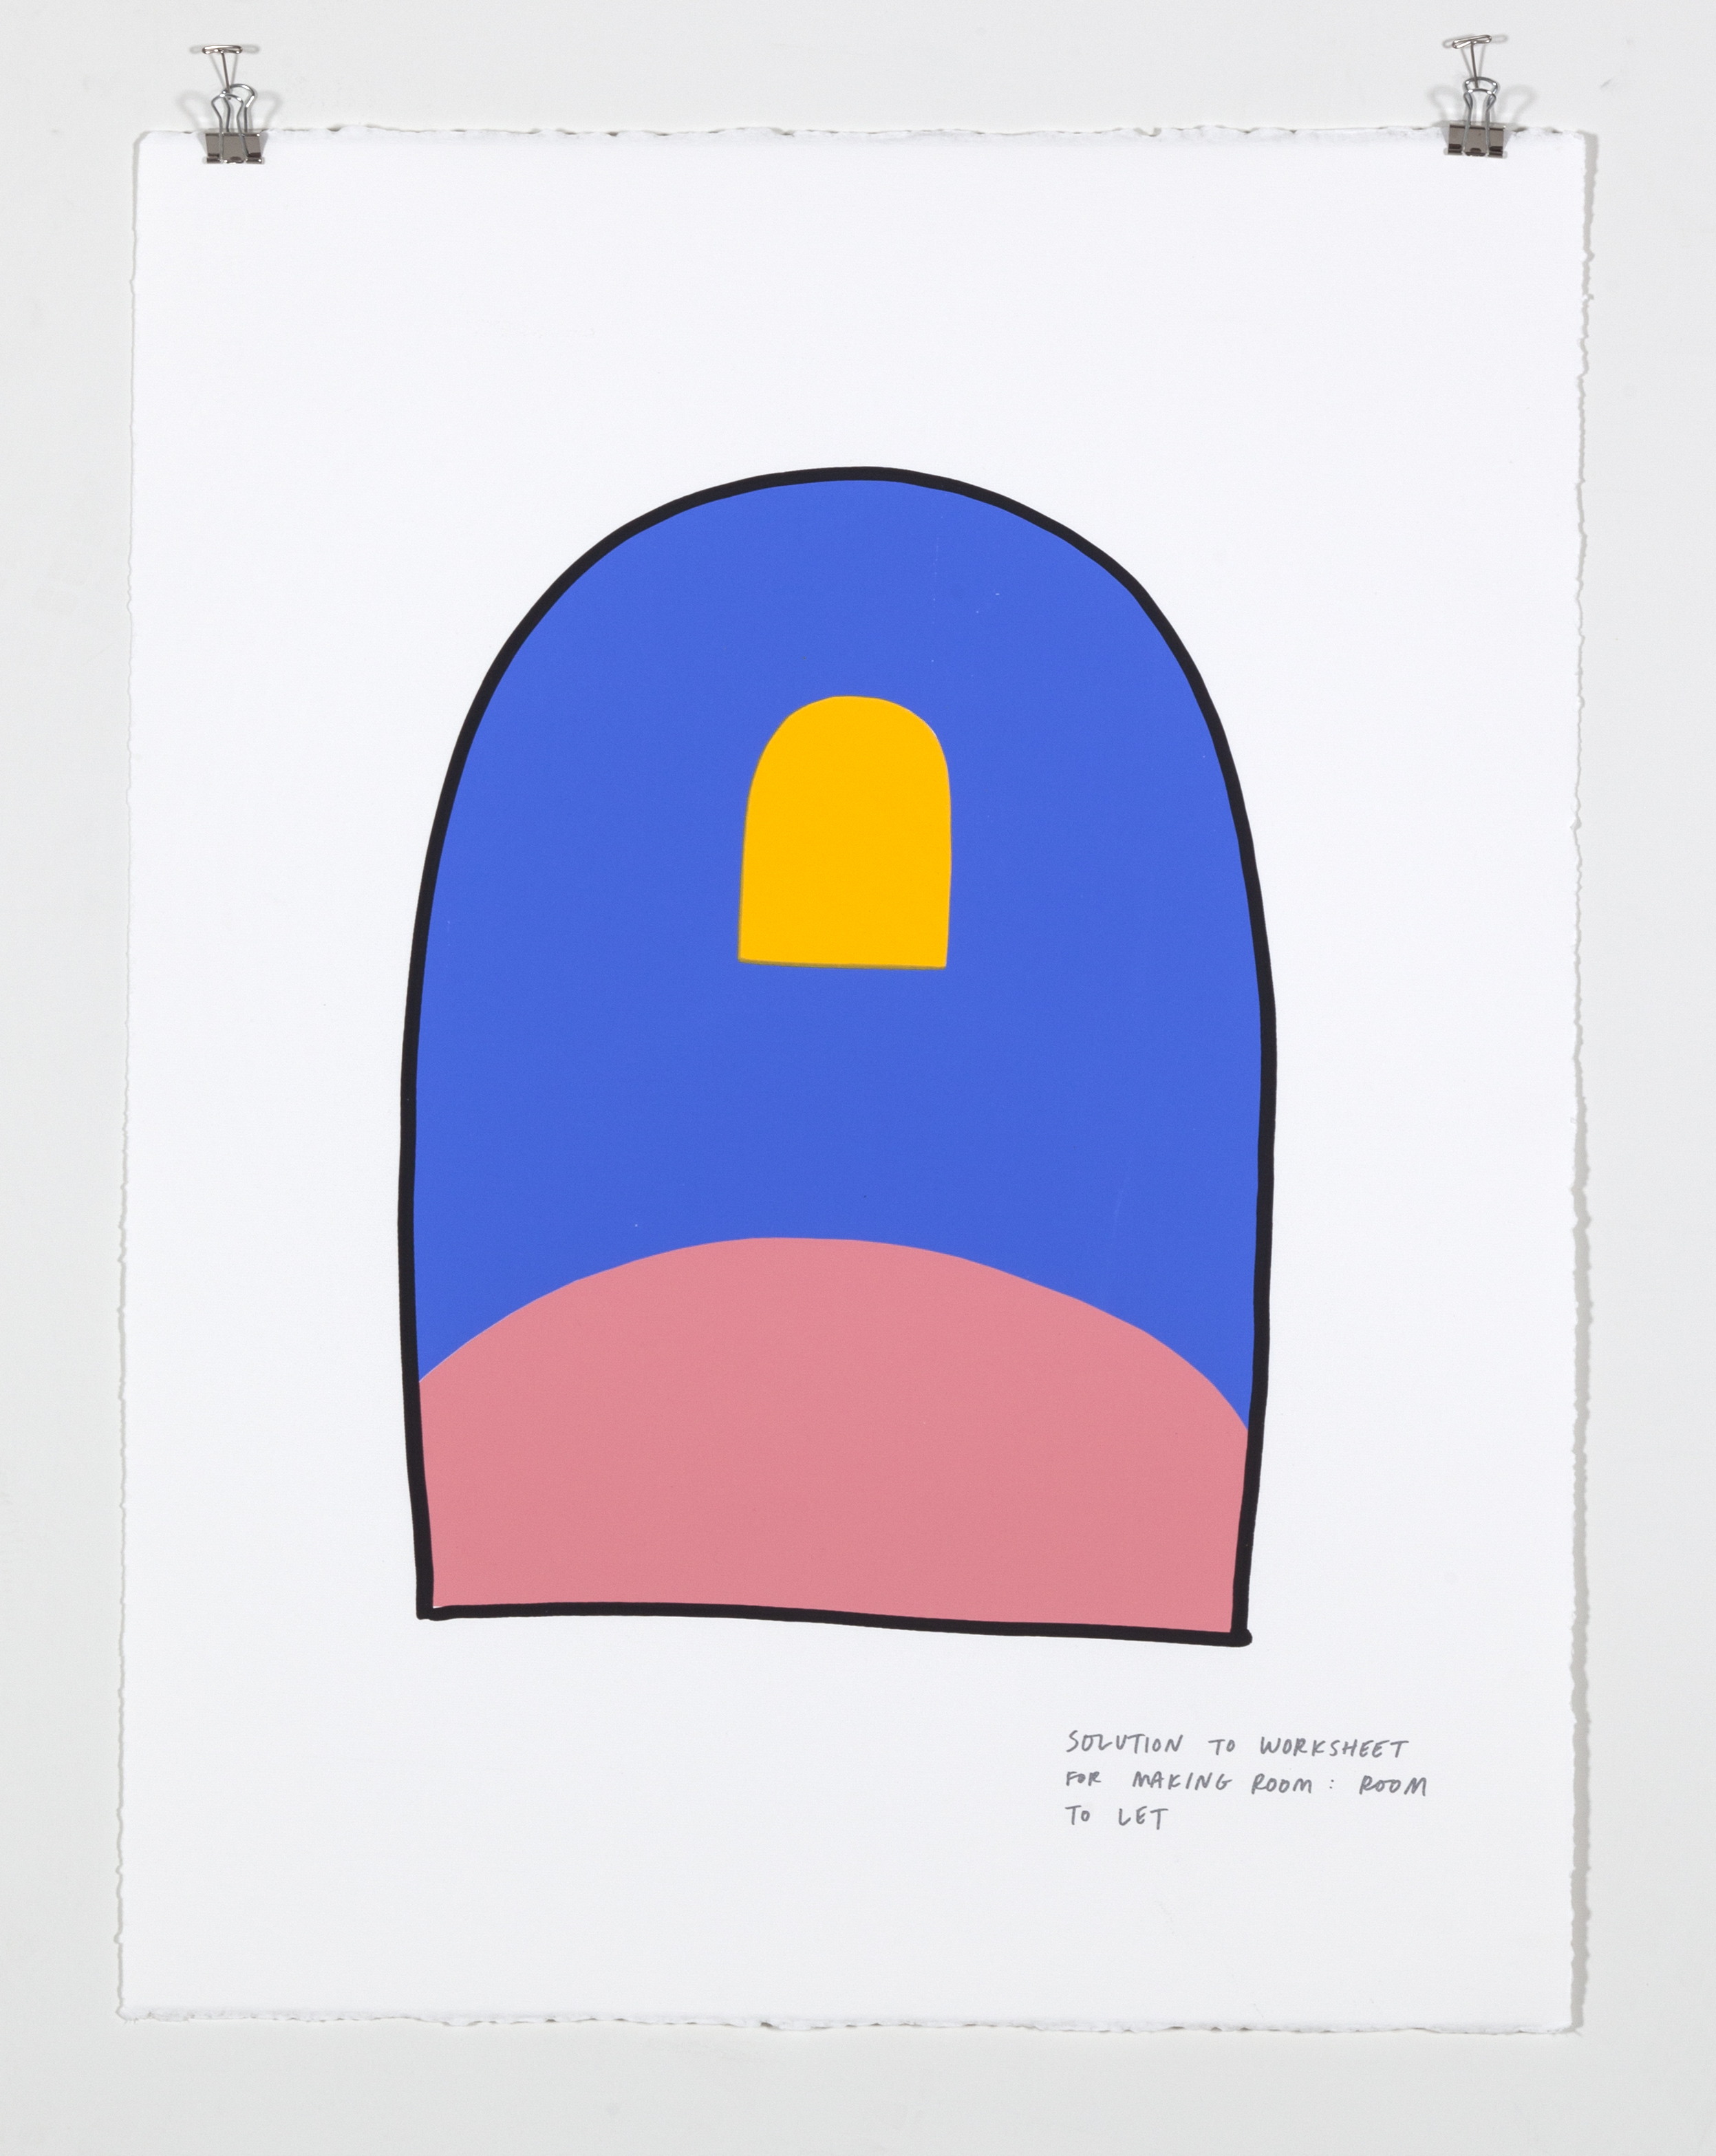 Solution to Worksheet for Making Room: Room to Let,  2018  Five color silkscreen print on paper 19 7/8 x 25 7/8 inches